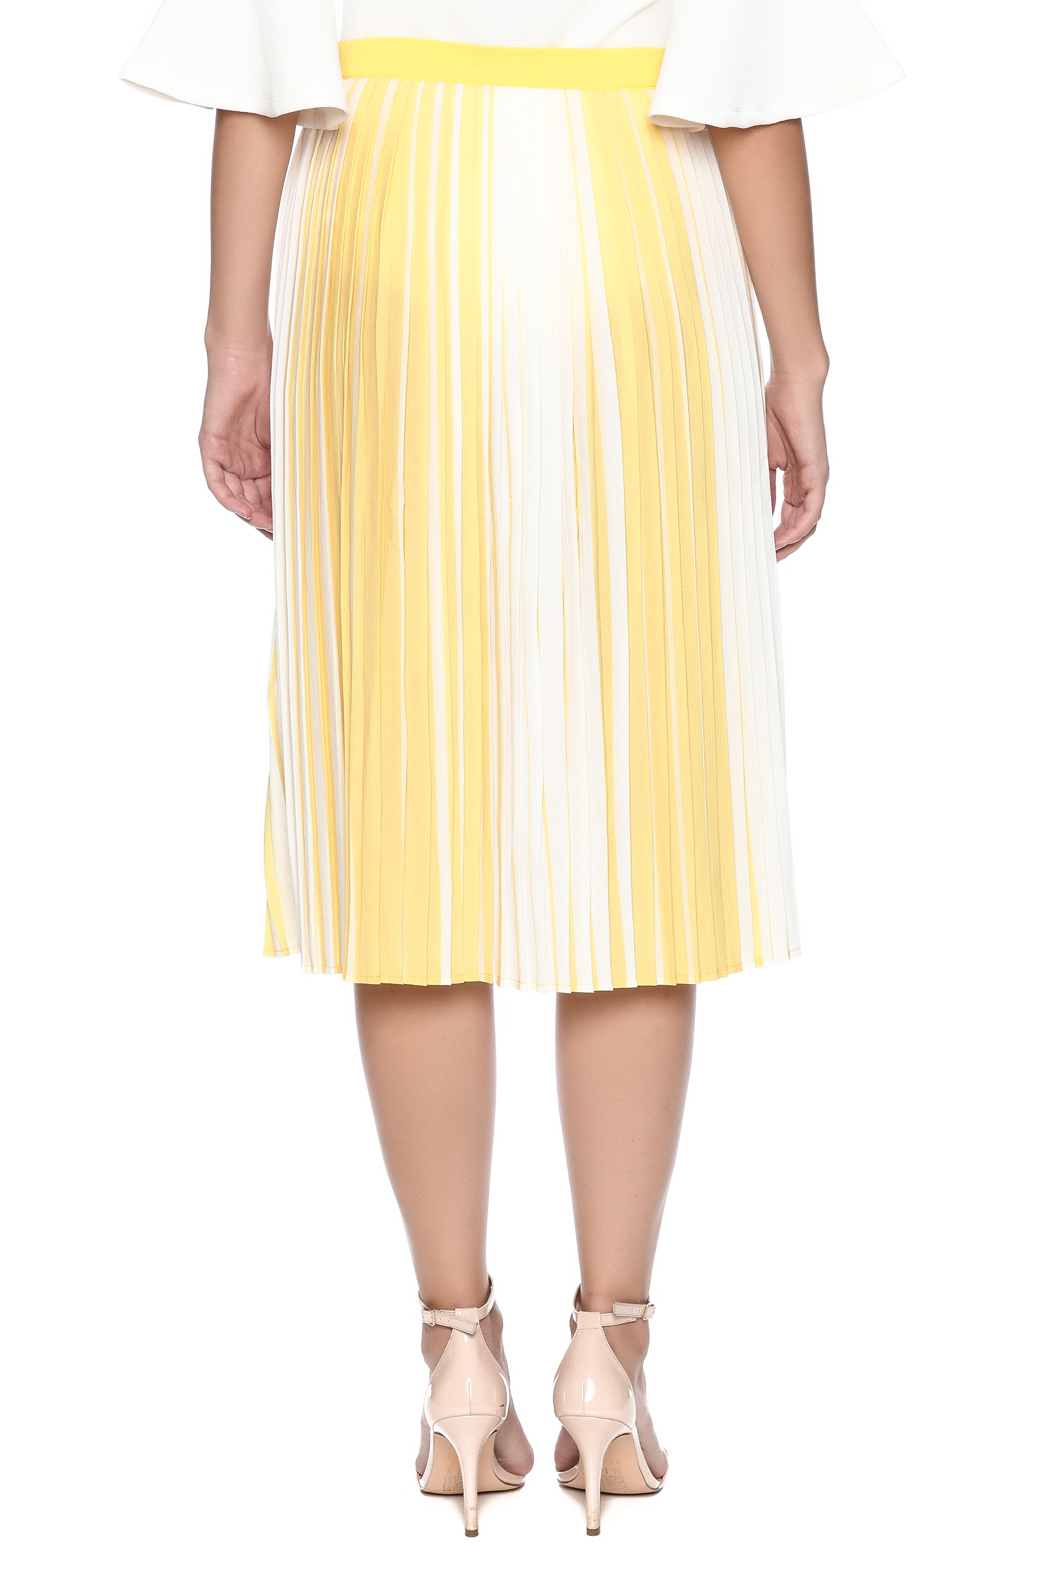 lily white Yellow Striped Skirt - Back Cropped Image